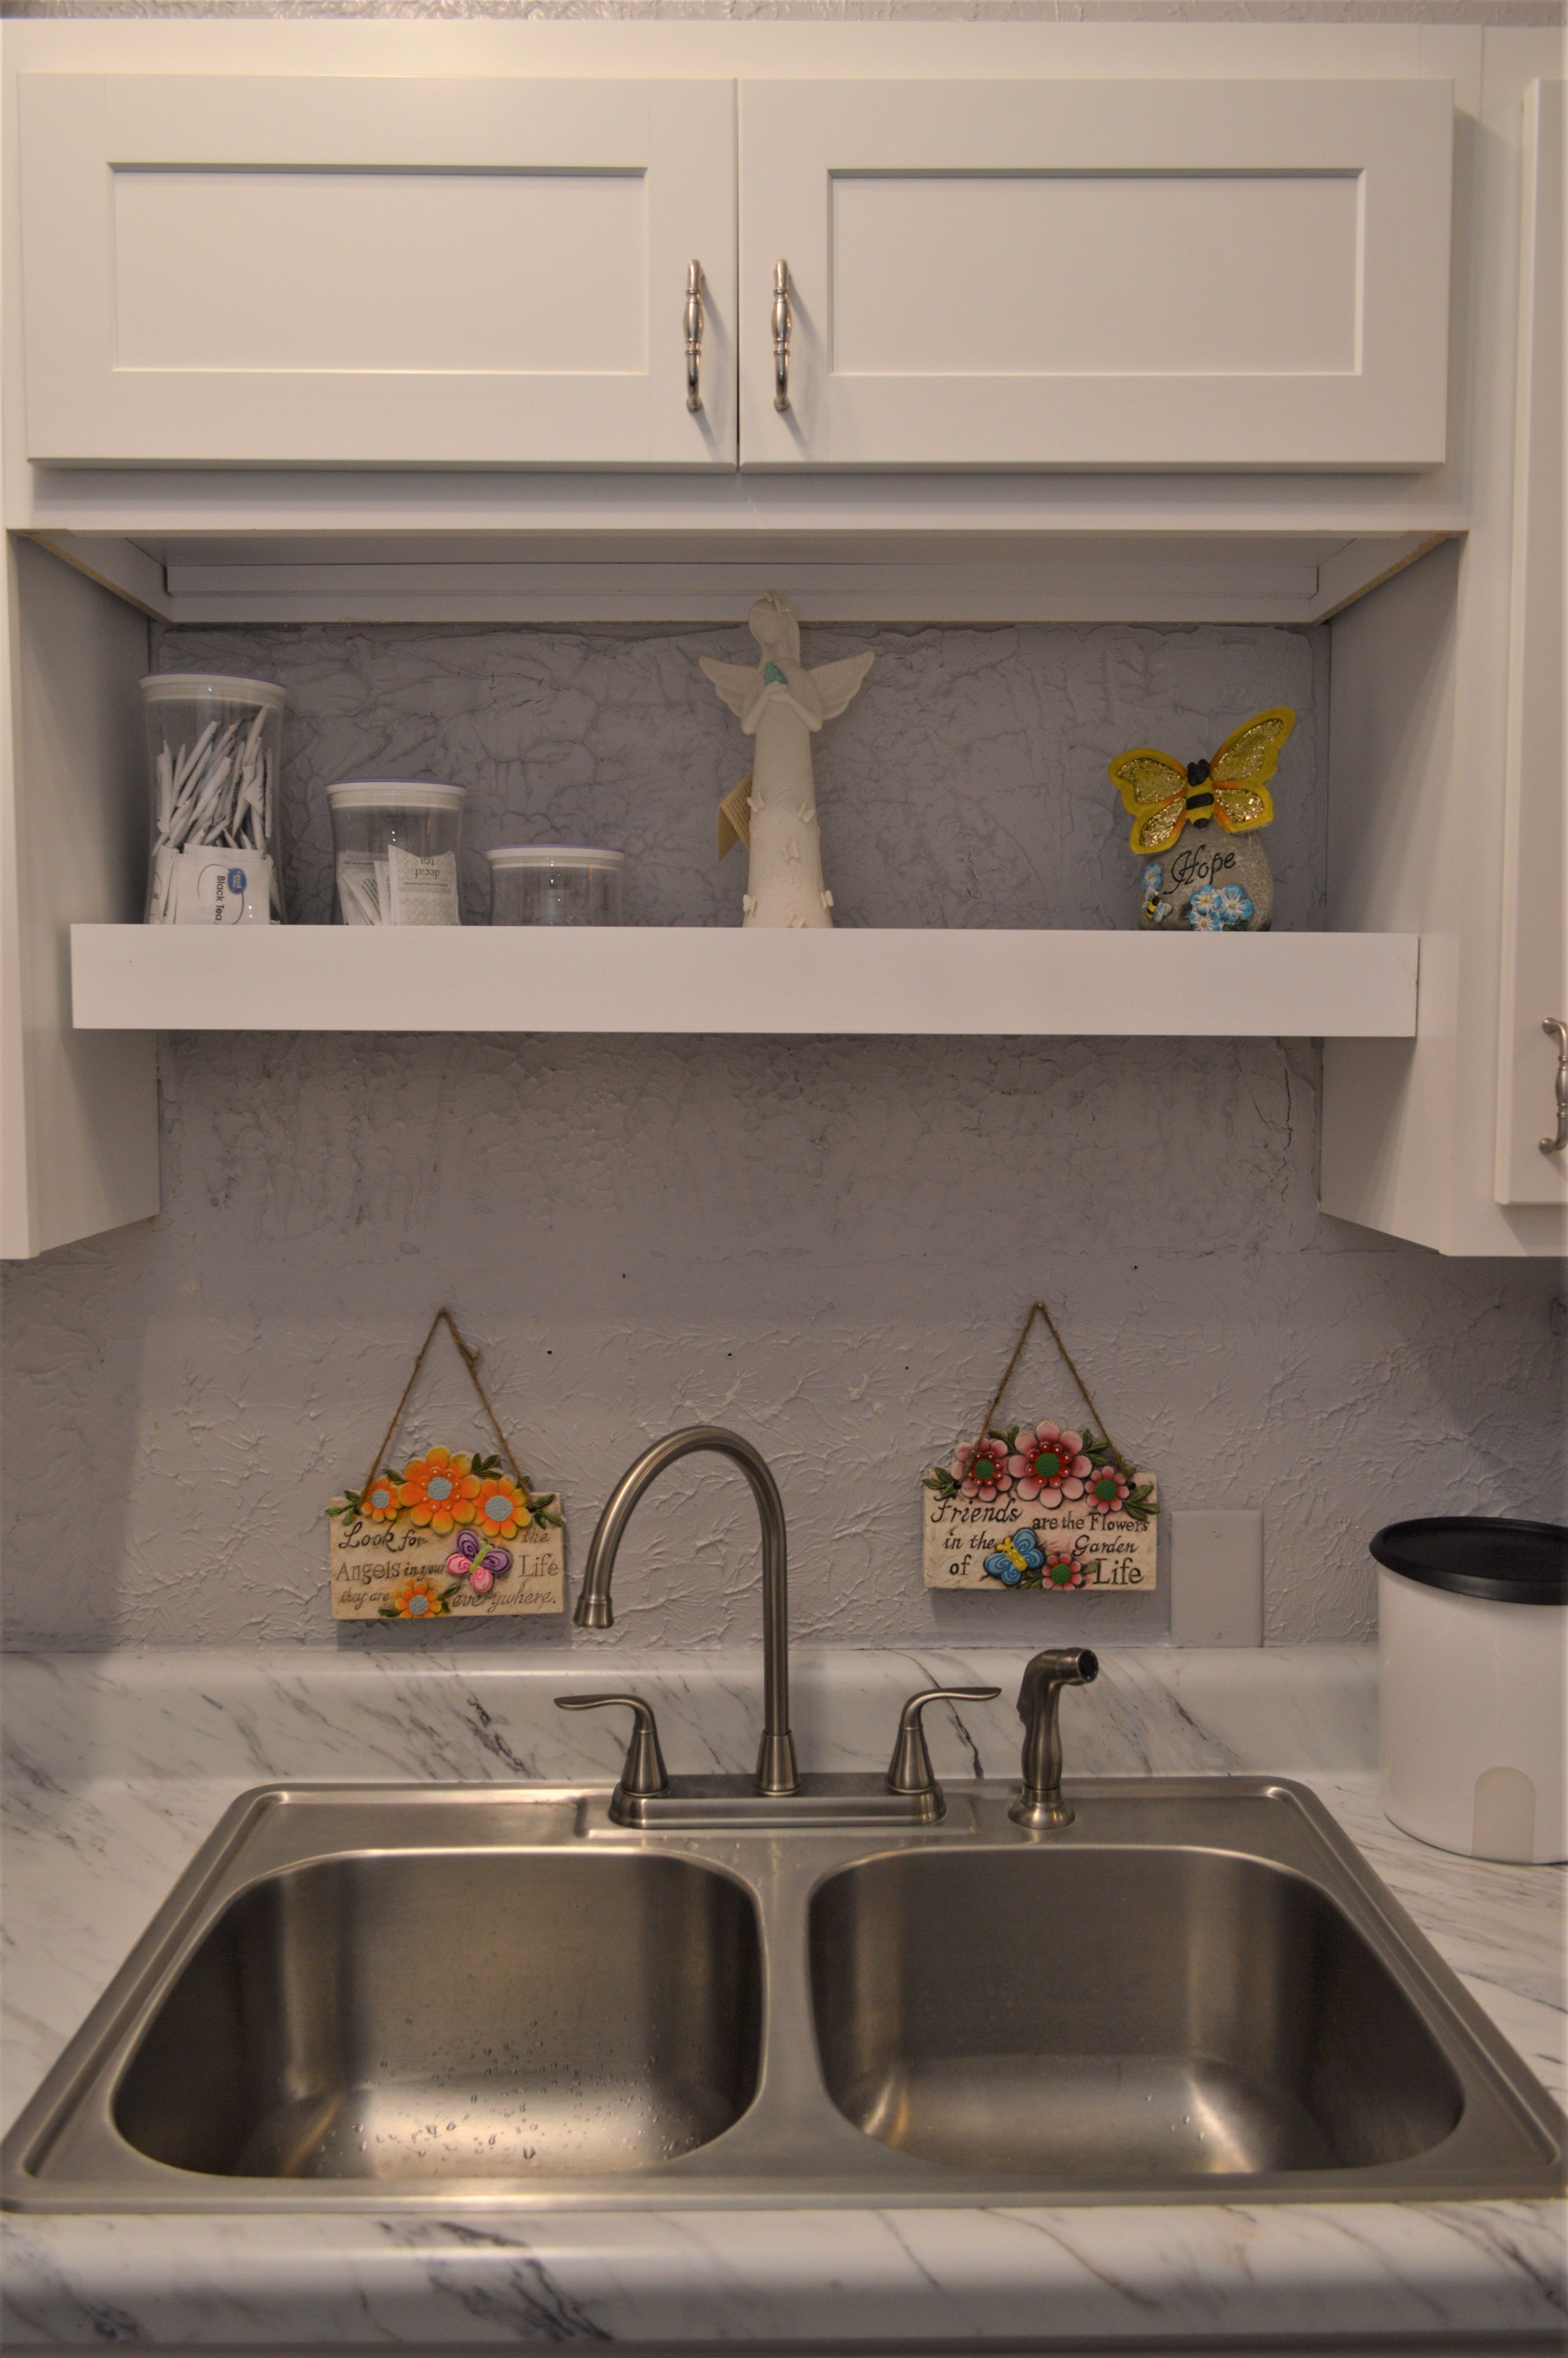 Kitchen Sink For 18 Cabinet Bailey S Cabinets Pelican Equal Bowl Stainless Steel Topmount